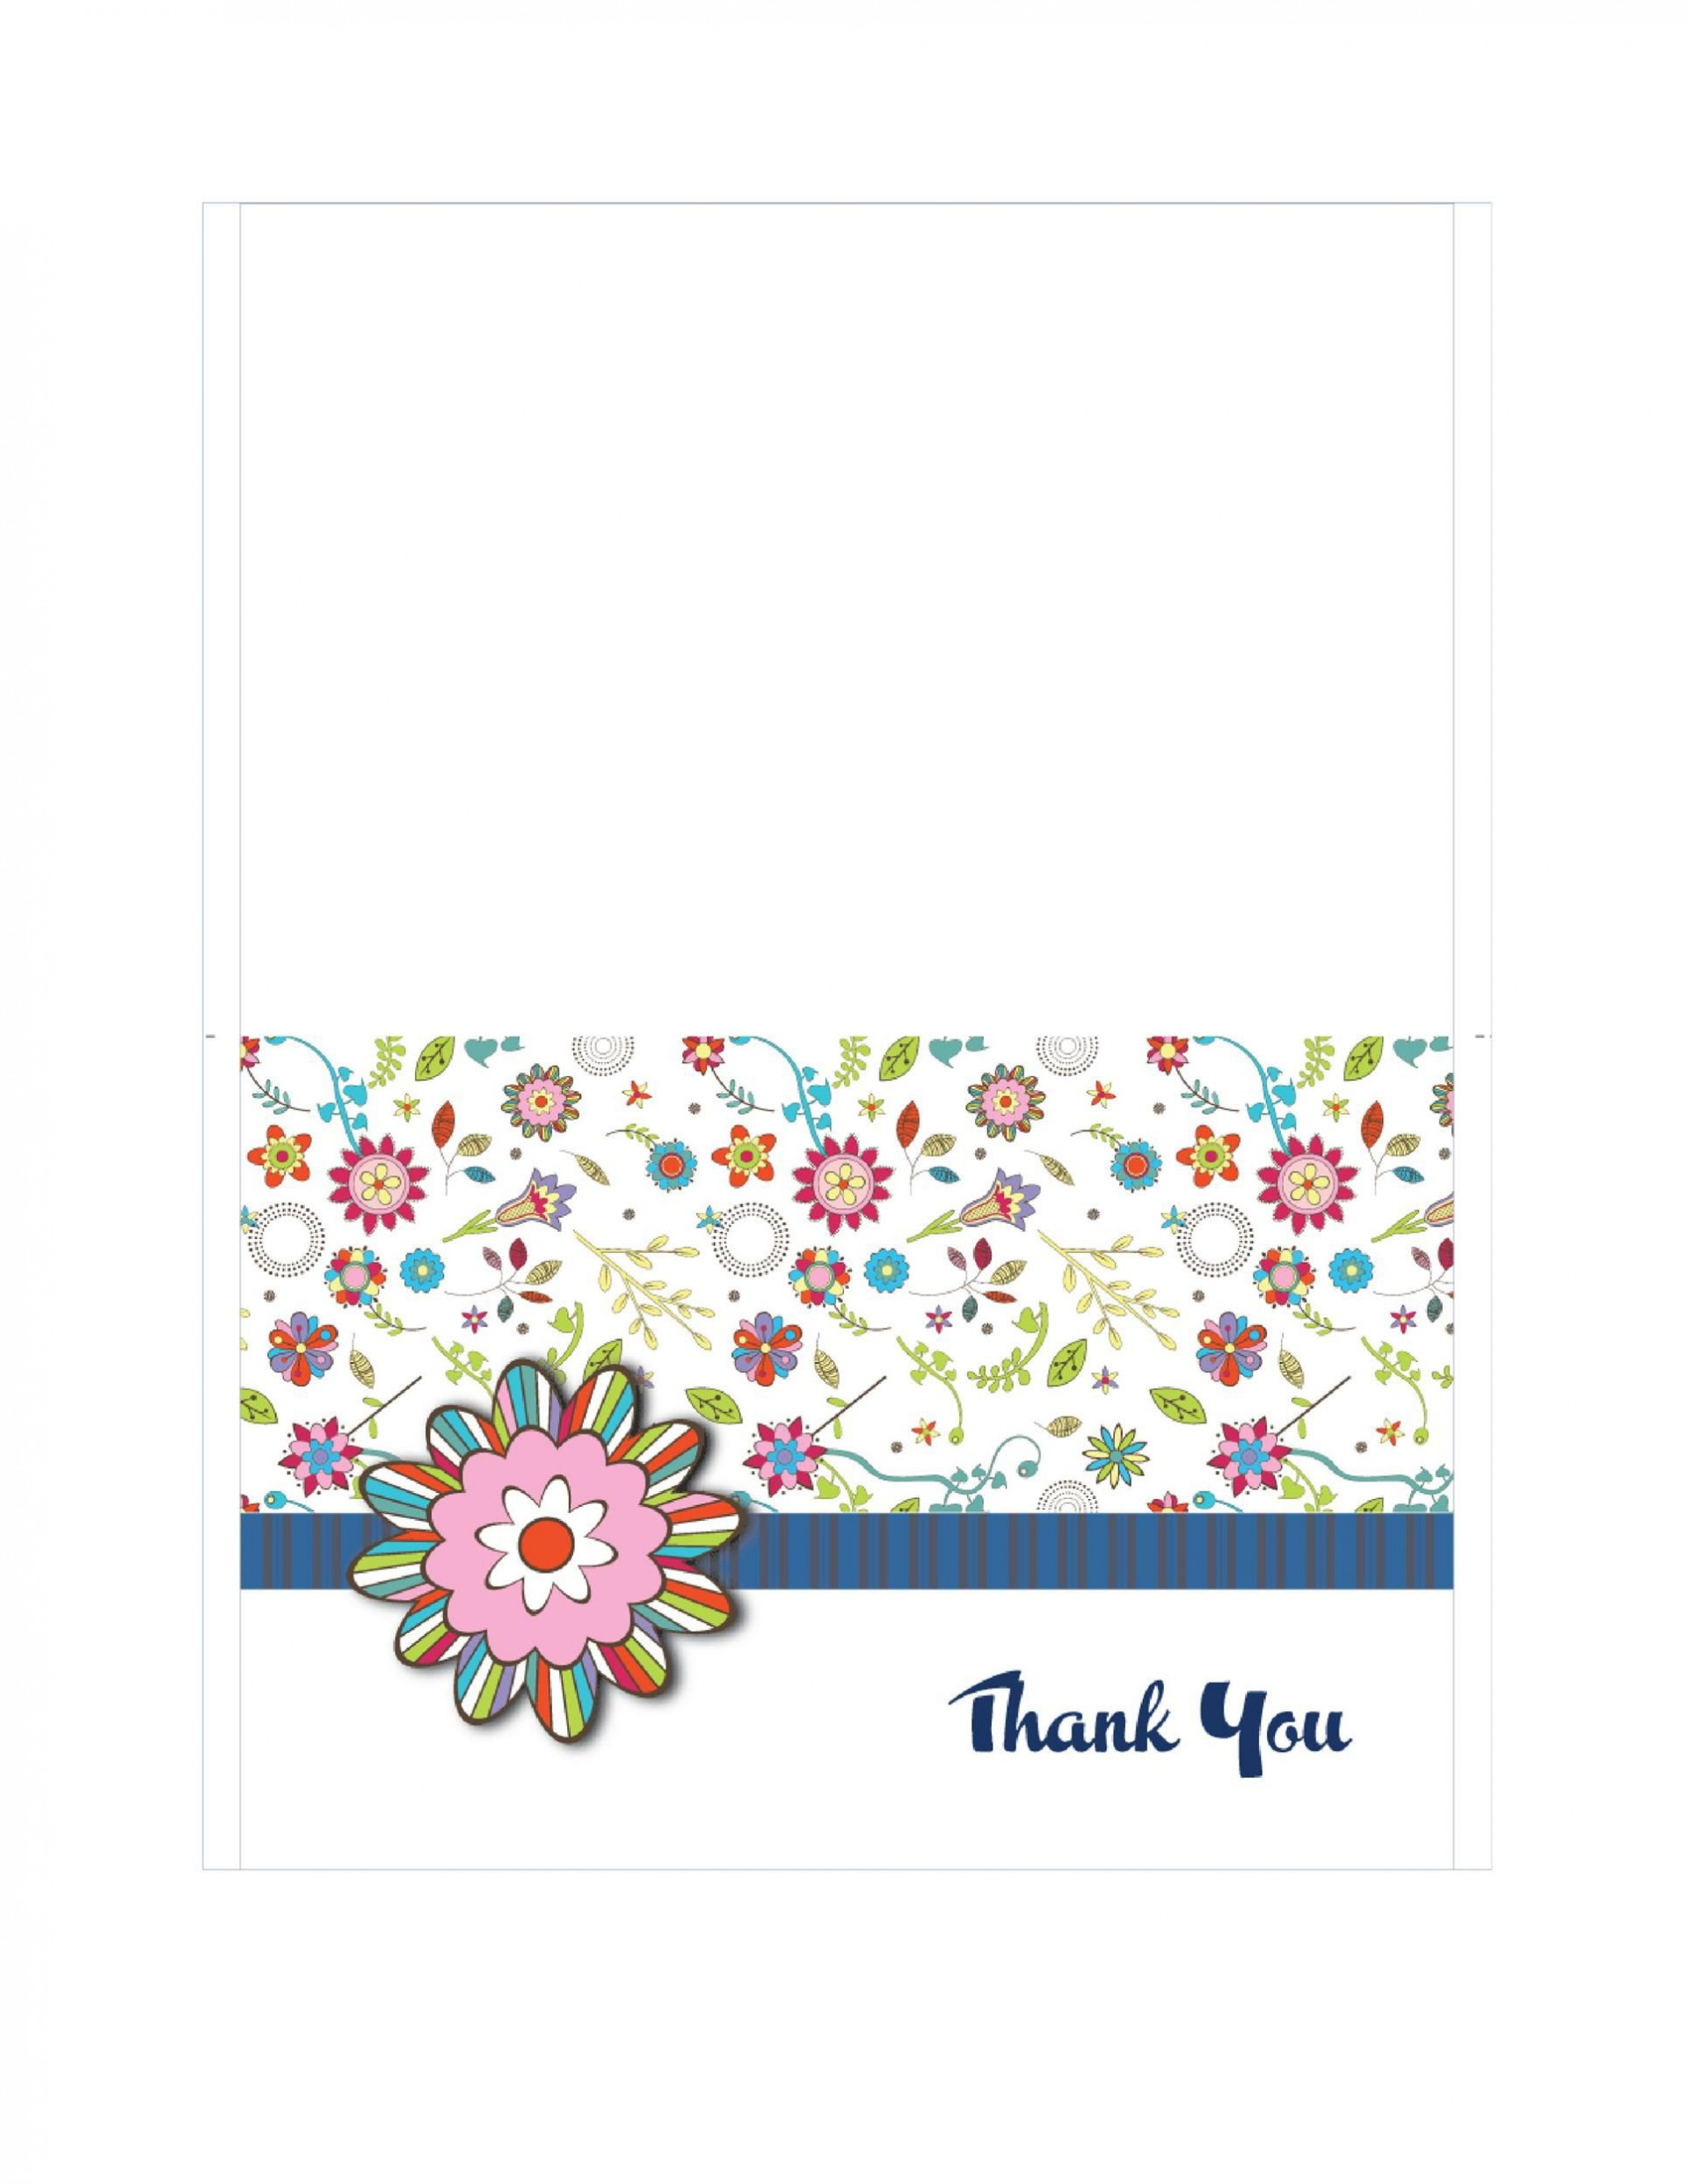 008 Amazing Free Thank You Card Template Design  Google Doc For Funeral Microsoft Word1920